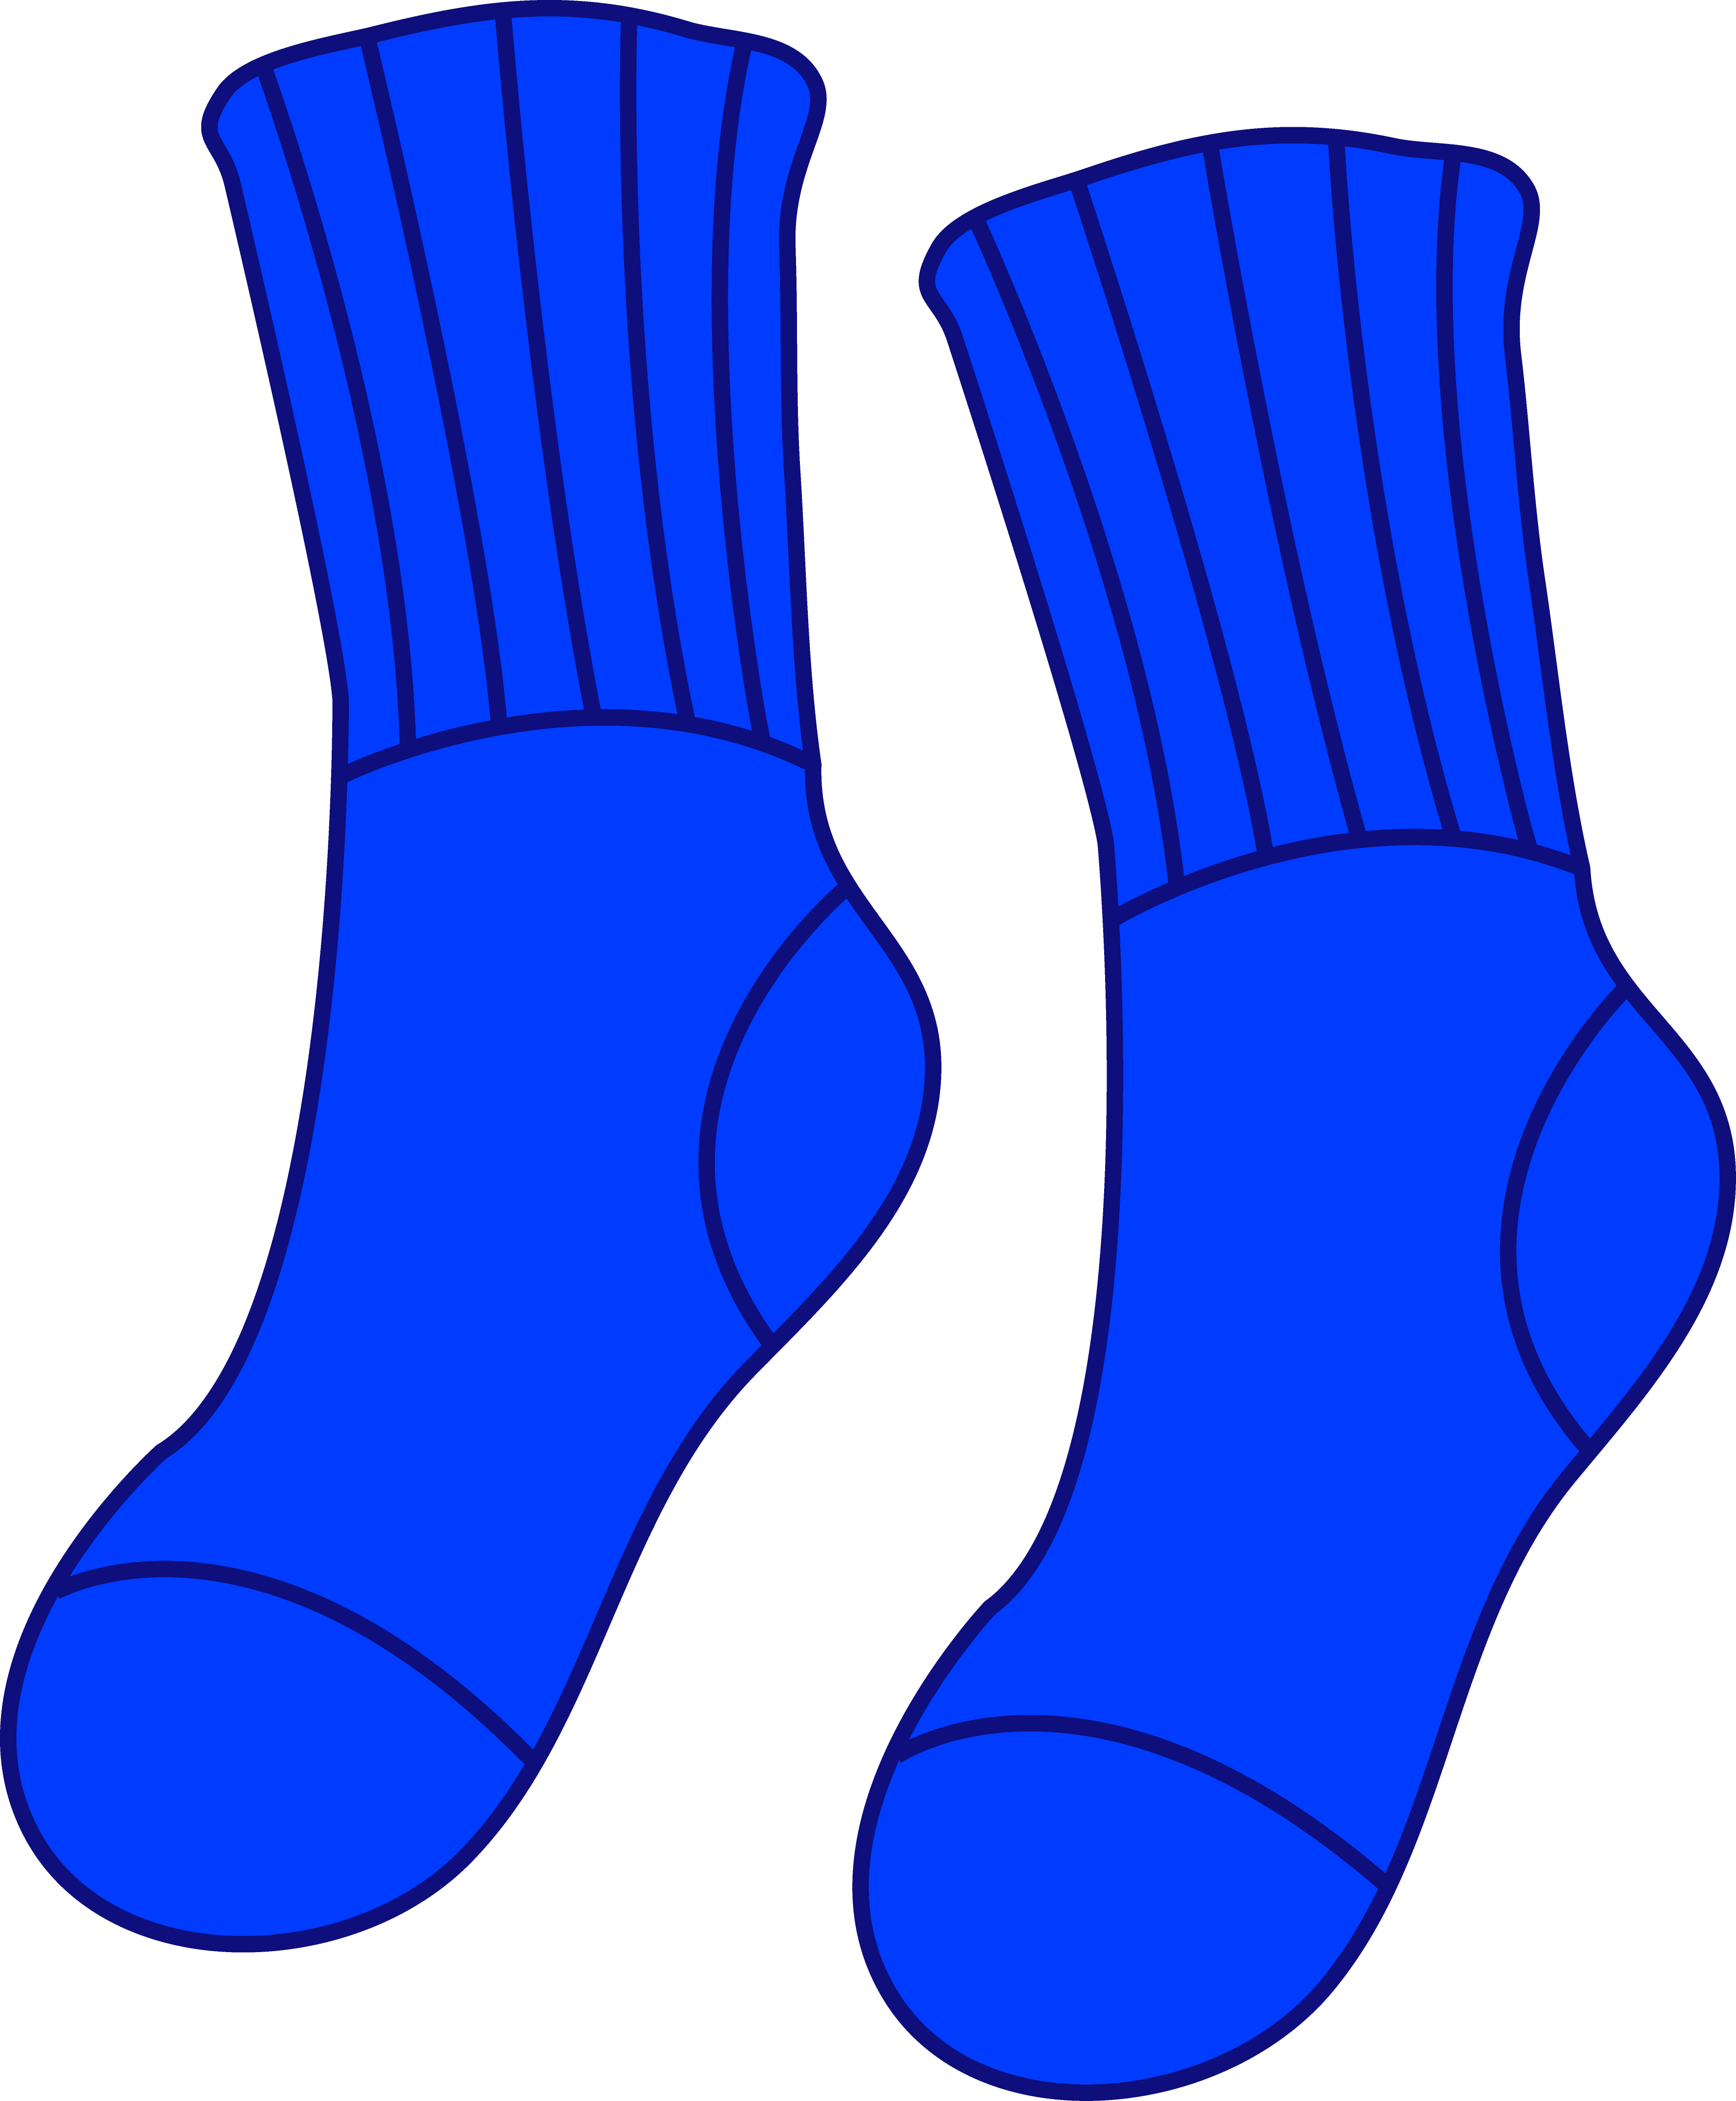 Shirt pants and socks clipart clipart library library Free Blue Socks Cliparts, Download Free Clip Art, Free Clip Art on ... clipart library library